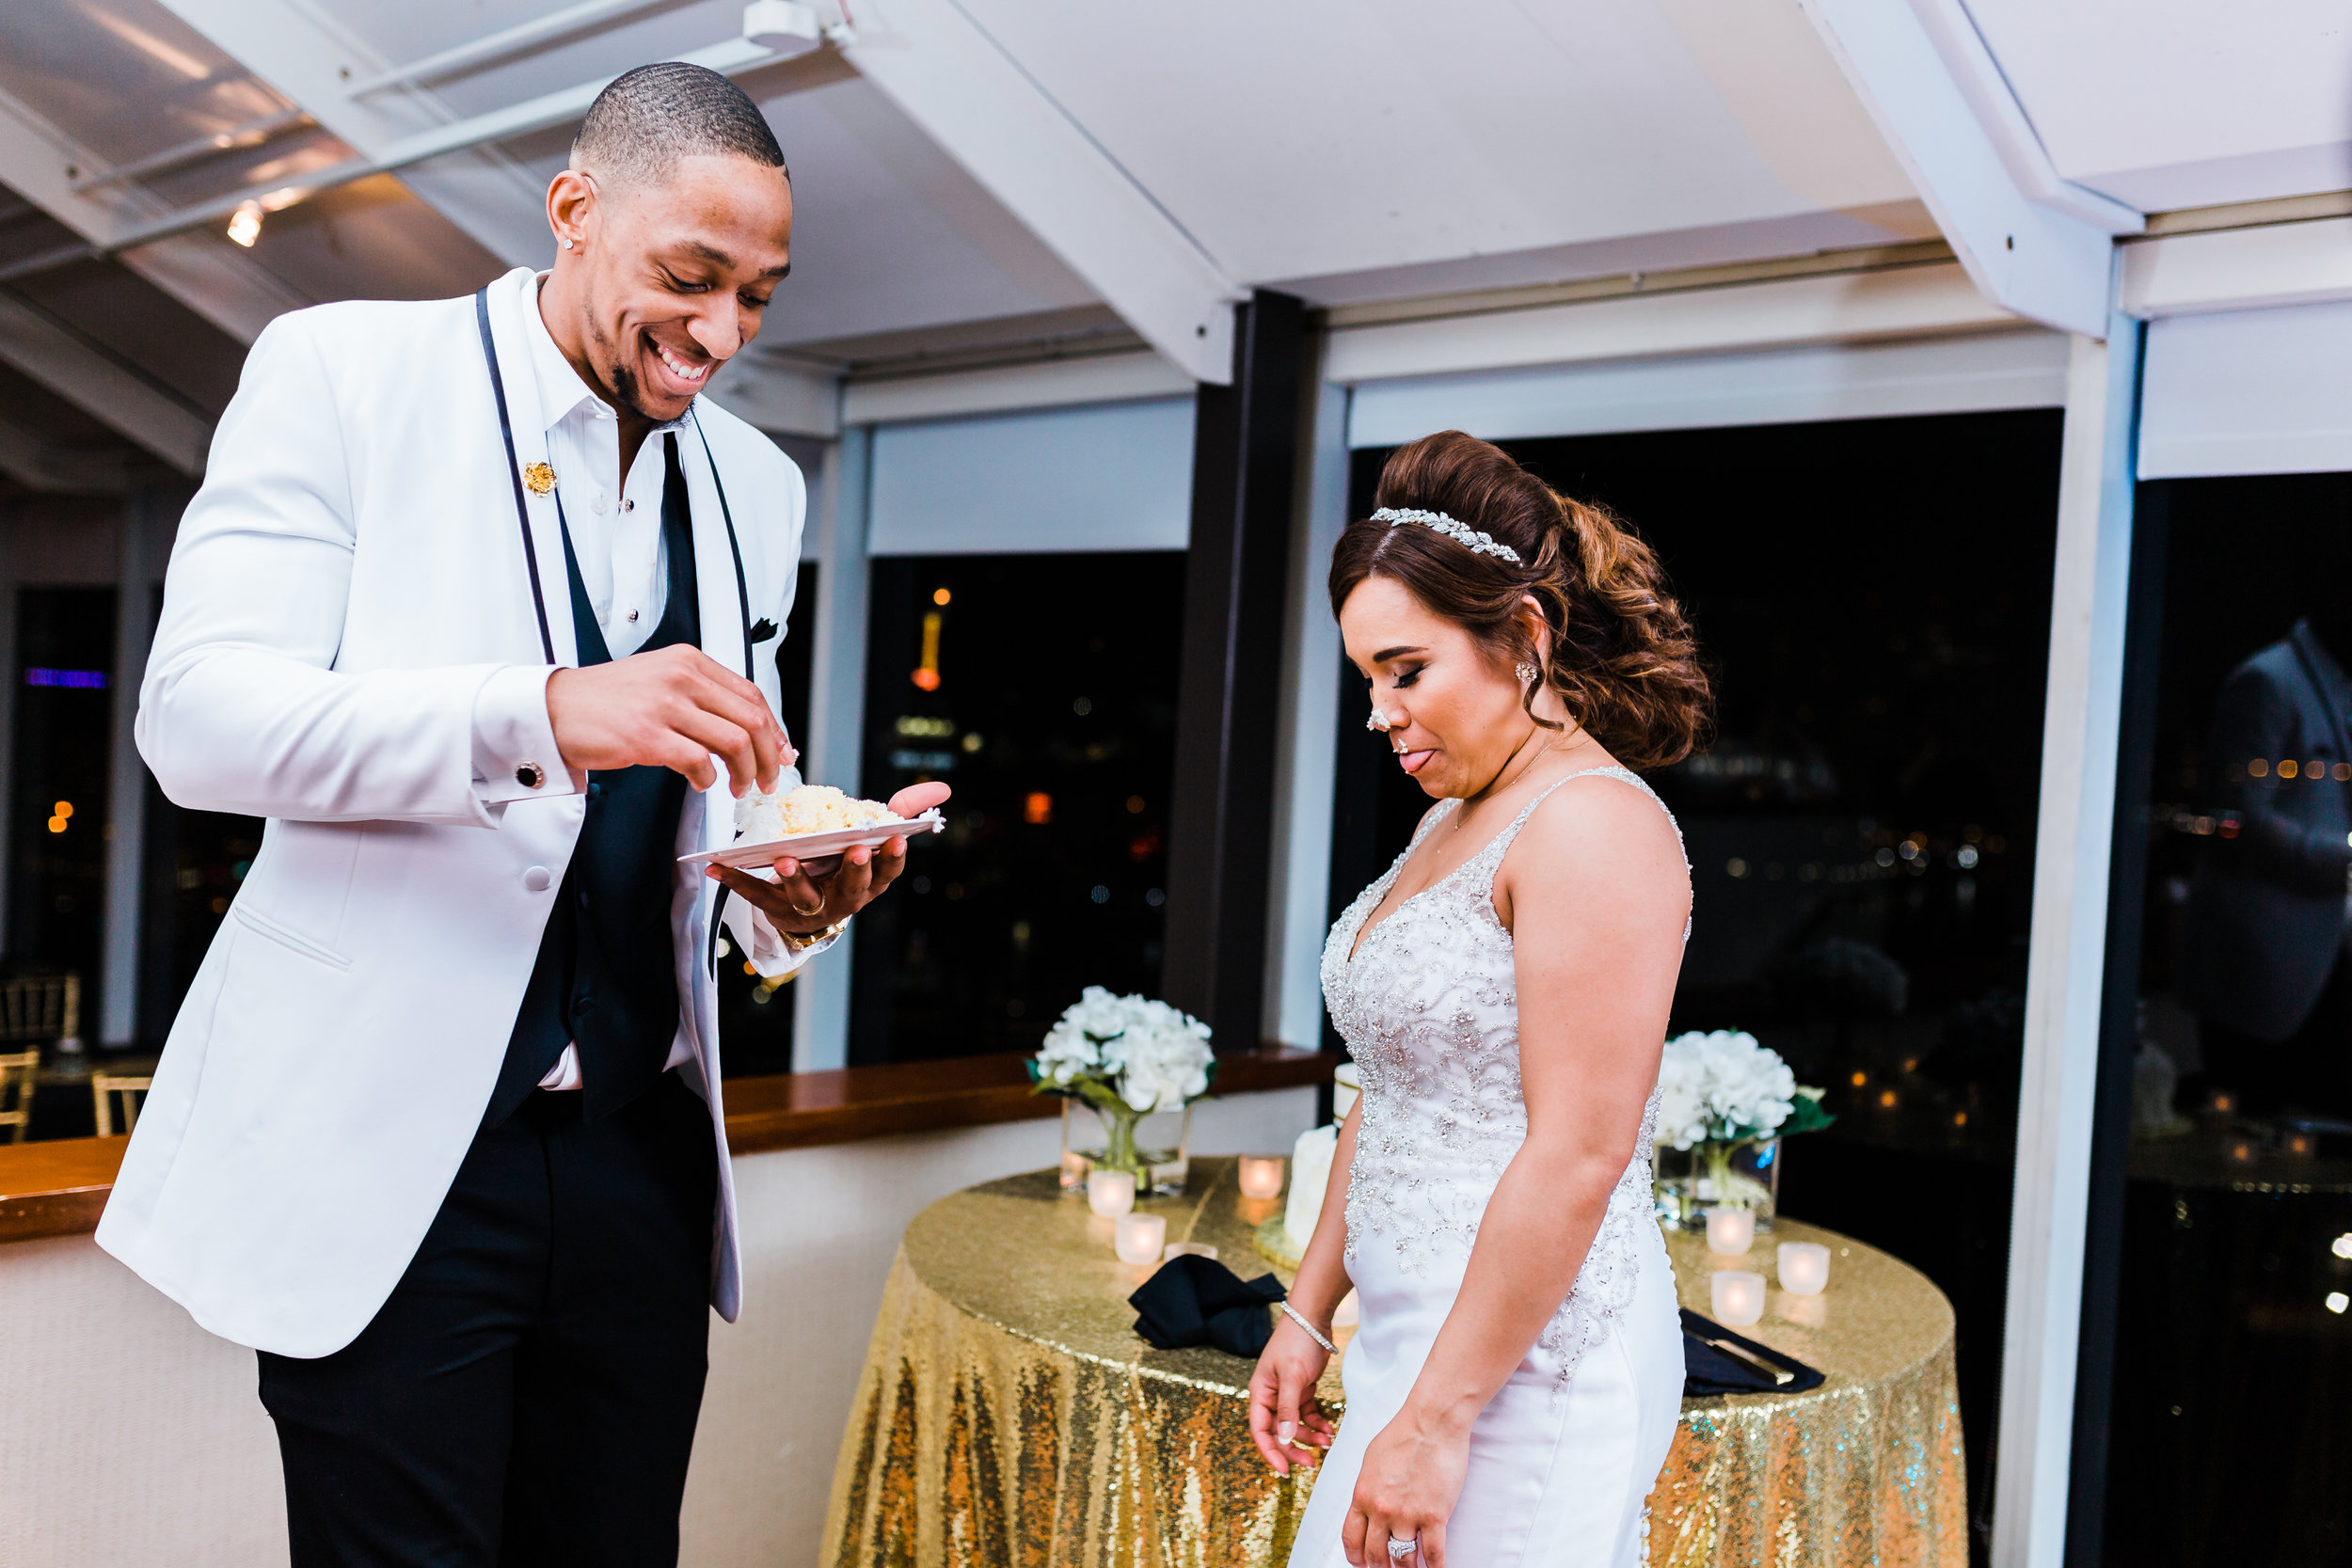 groom laughs after putting icing on bride's nose